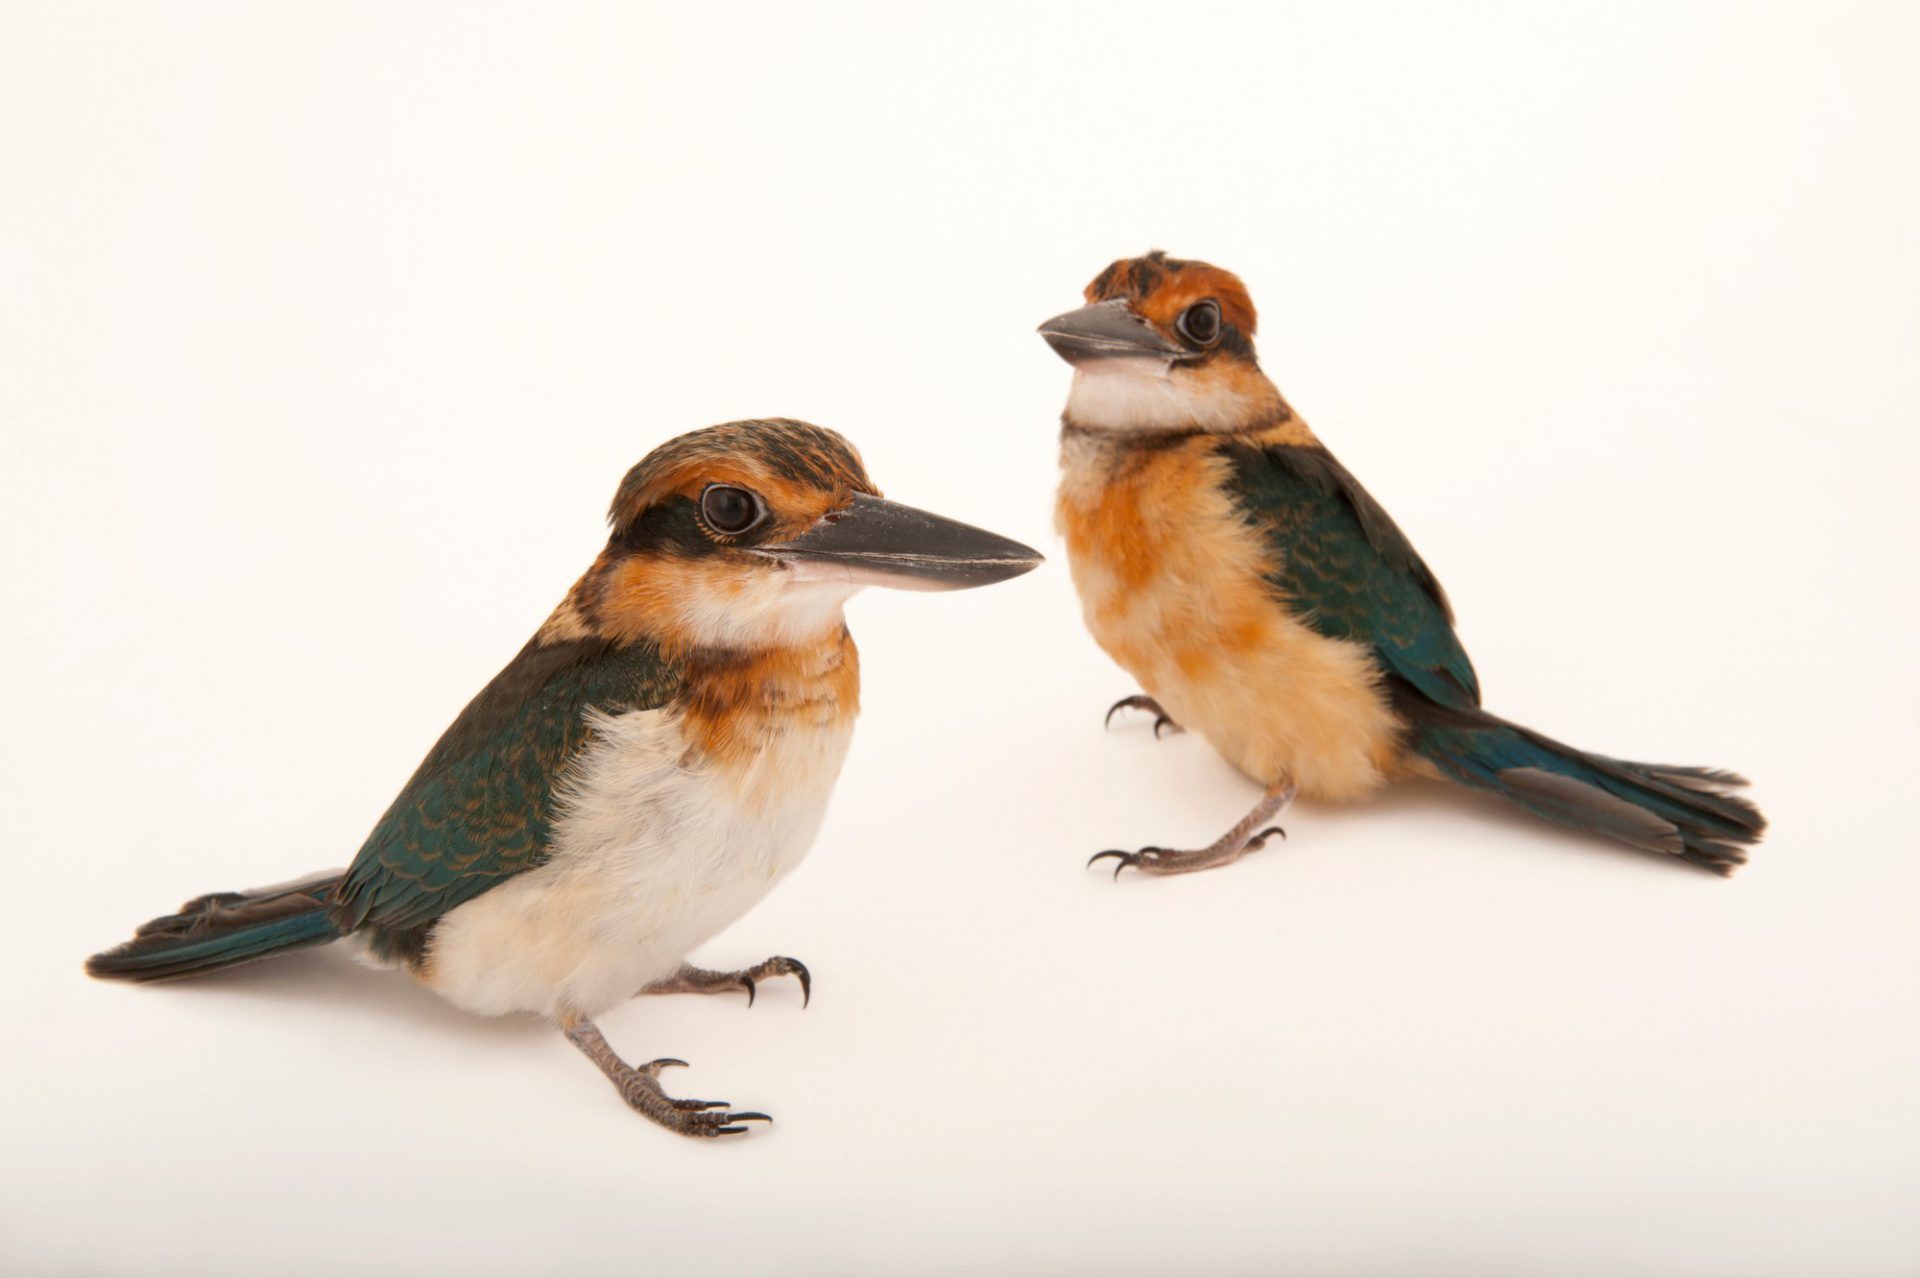 Photo: A pair of endangered Guam Micronesian kingfishers (Todiramphus cinnamominus cinnamominus) at the Houston Zoo.